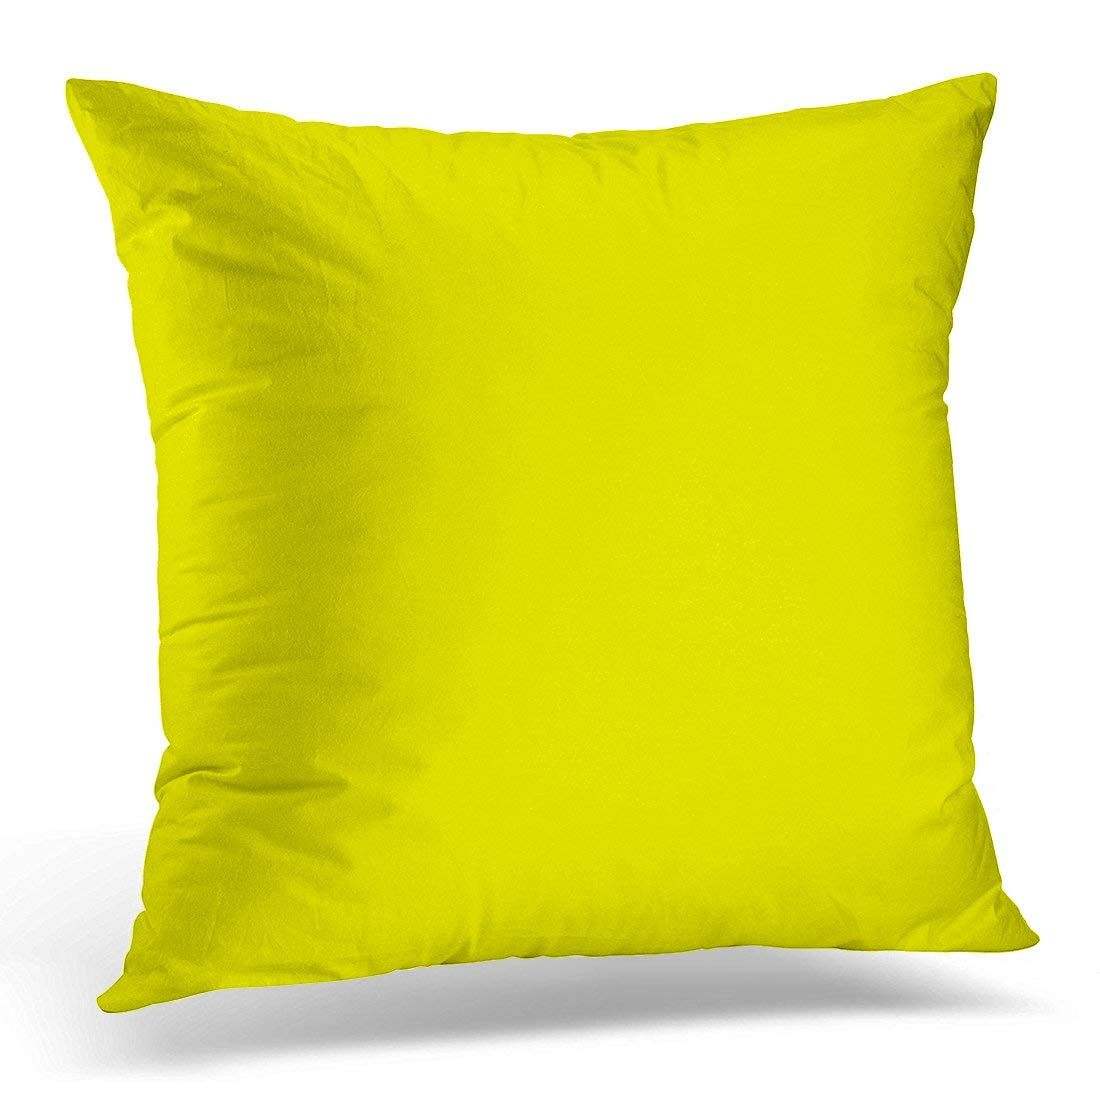 BPBOP Brown Modern Solid Yellow Color Pillowcase Cushion Cover 20x20 inches